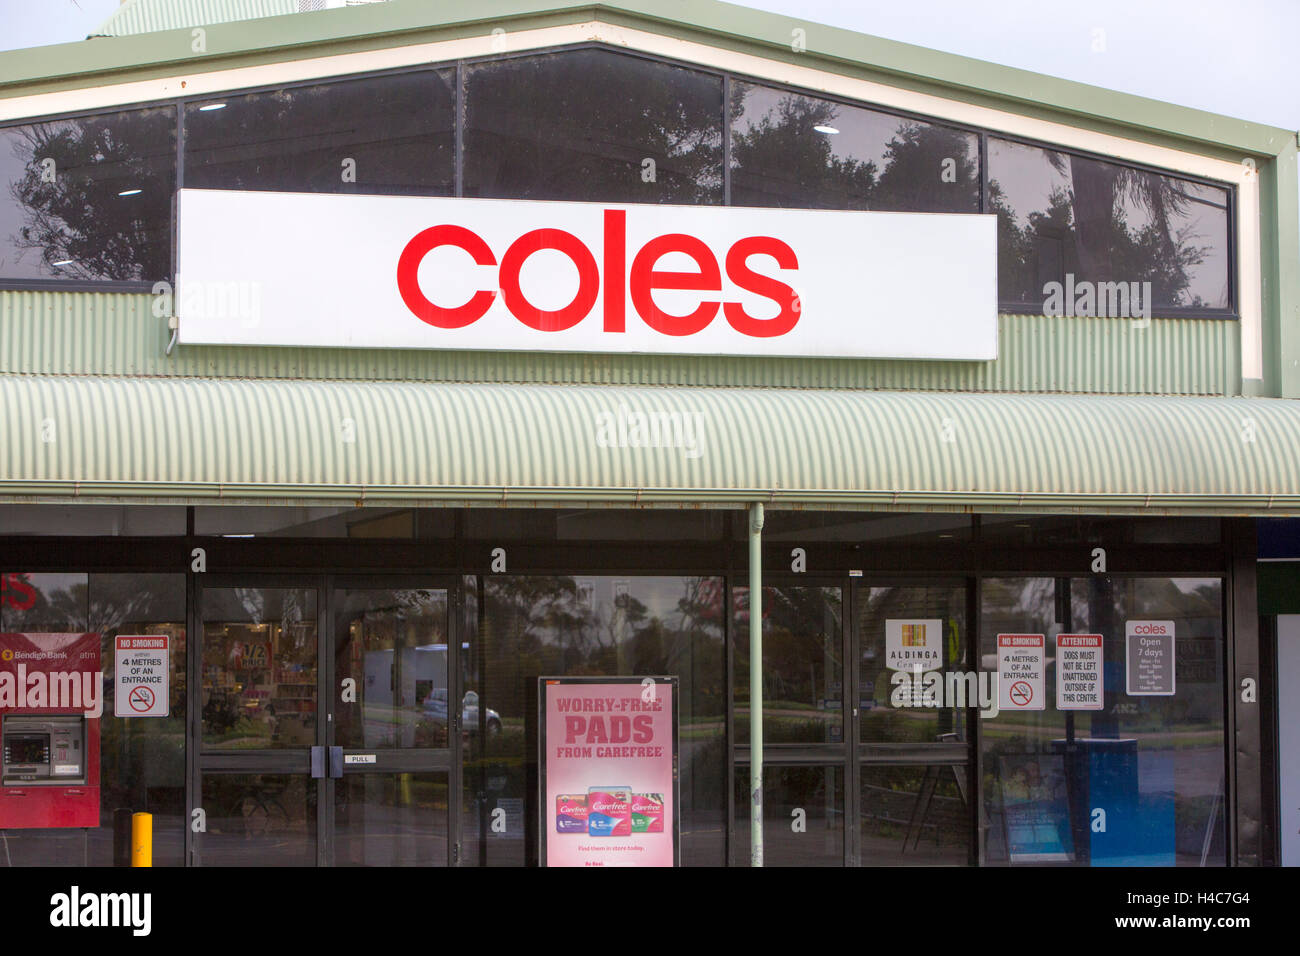 Hydroponic Store Melbourne Coles Supermarket Australia Stock Photos And Coles